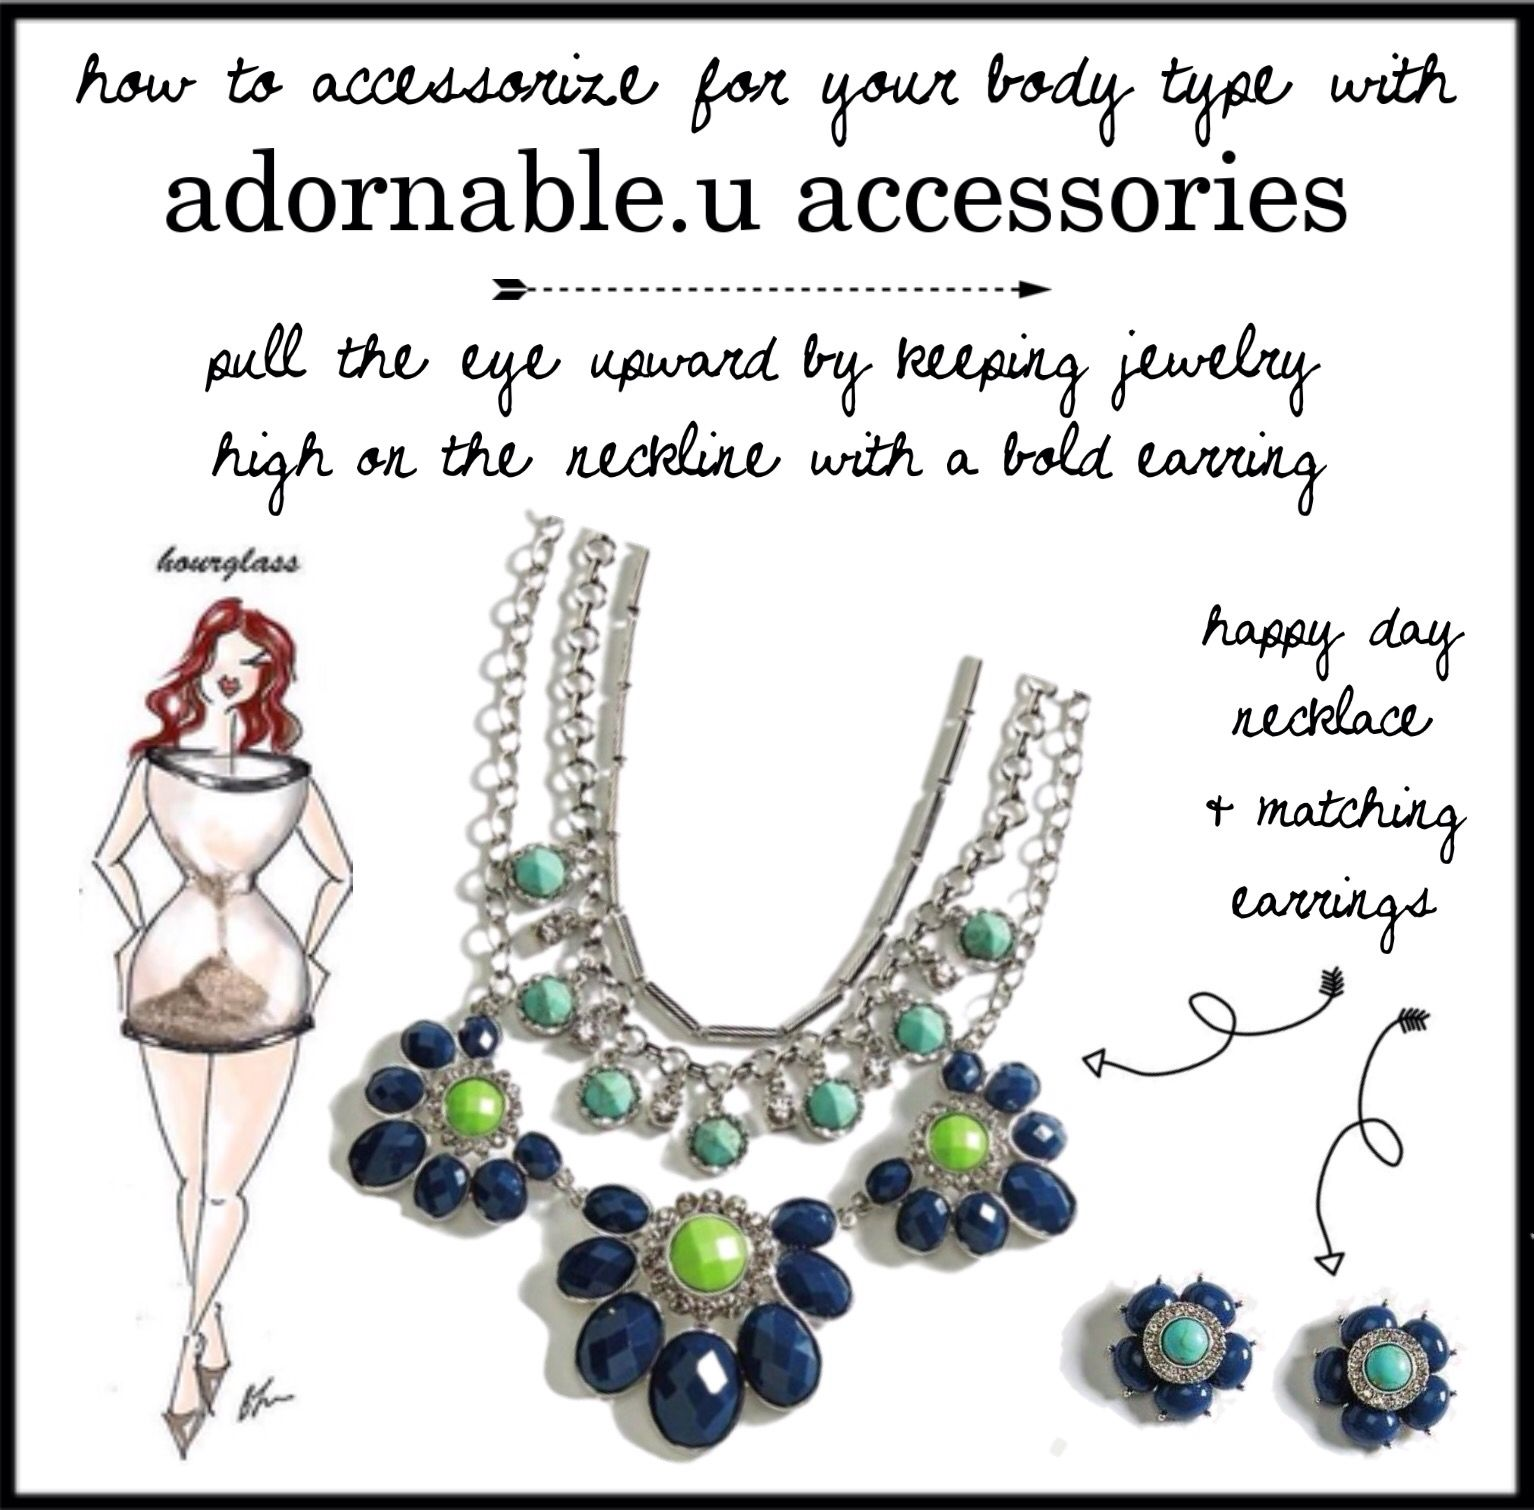 How to accessorize for your body type with adornable.u accessories hourglass